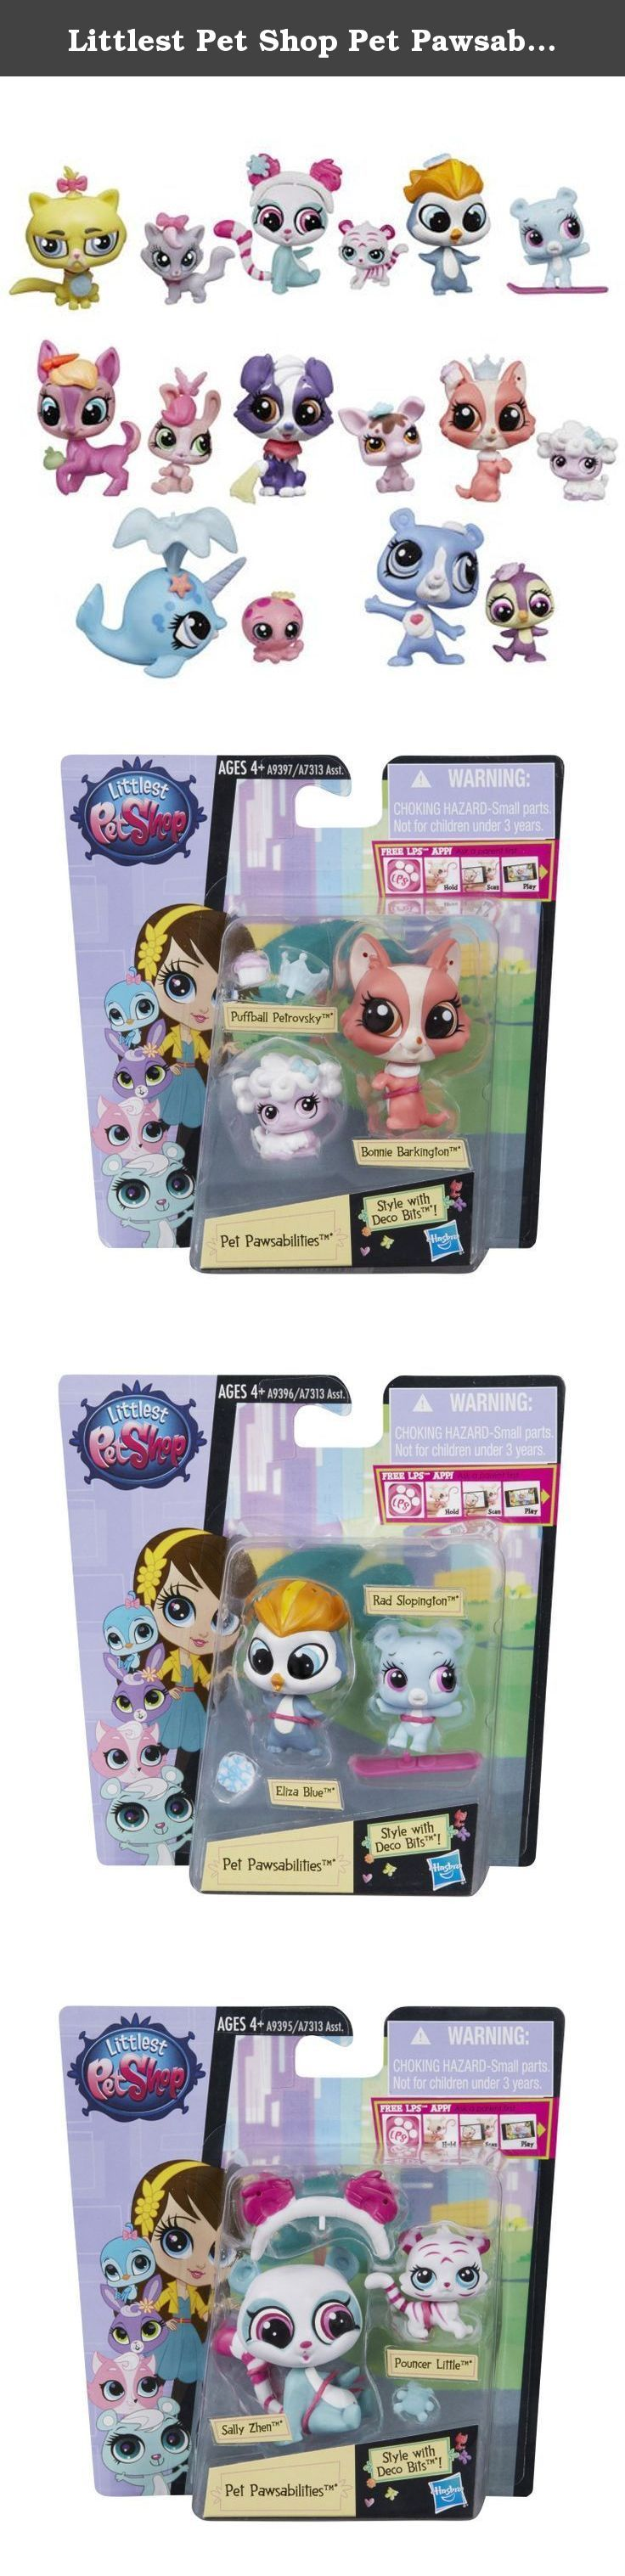 Littlest Pet Shop Pet Pawsabilities Mini-Figures Set of 8 Wave 2. Everything is pawsable! The Littlest Pet Shop Pet Pawsabilities Mini-Figures Wave 2 Set features a full suite of sweet critters including dogs, turtles, otters, and more. Figures are approximately 2 inches tall! Ages 4 and up!.